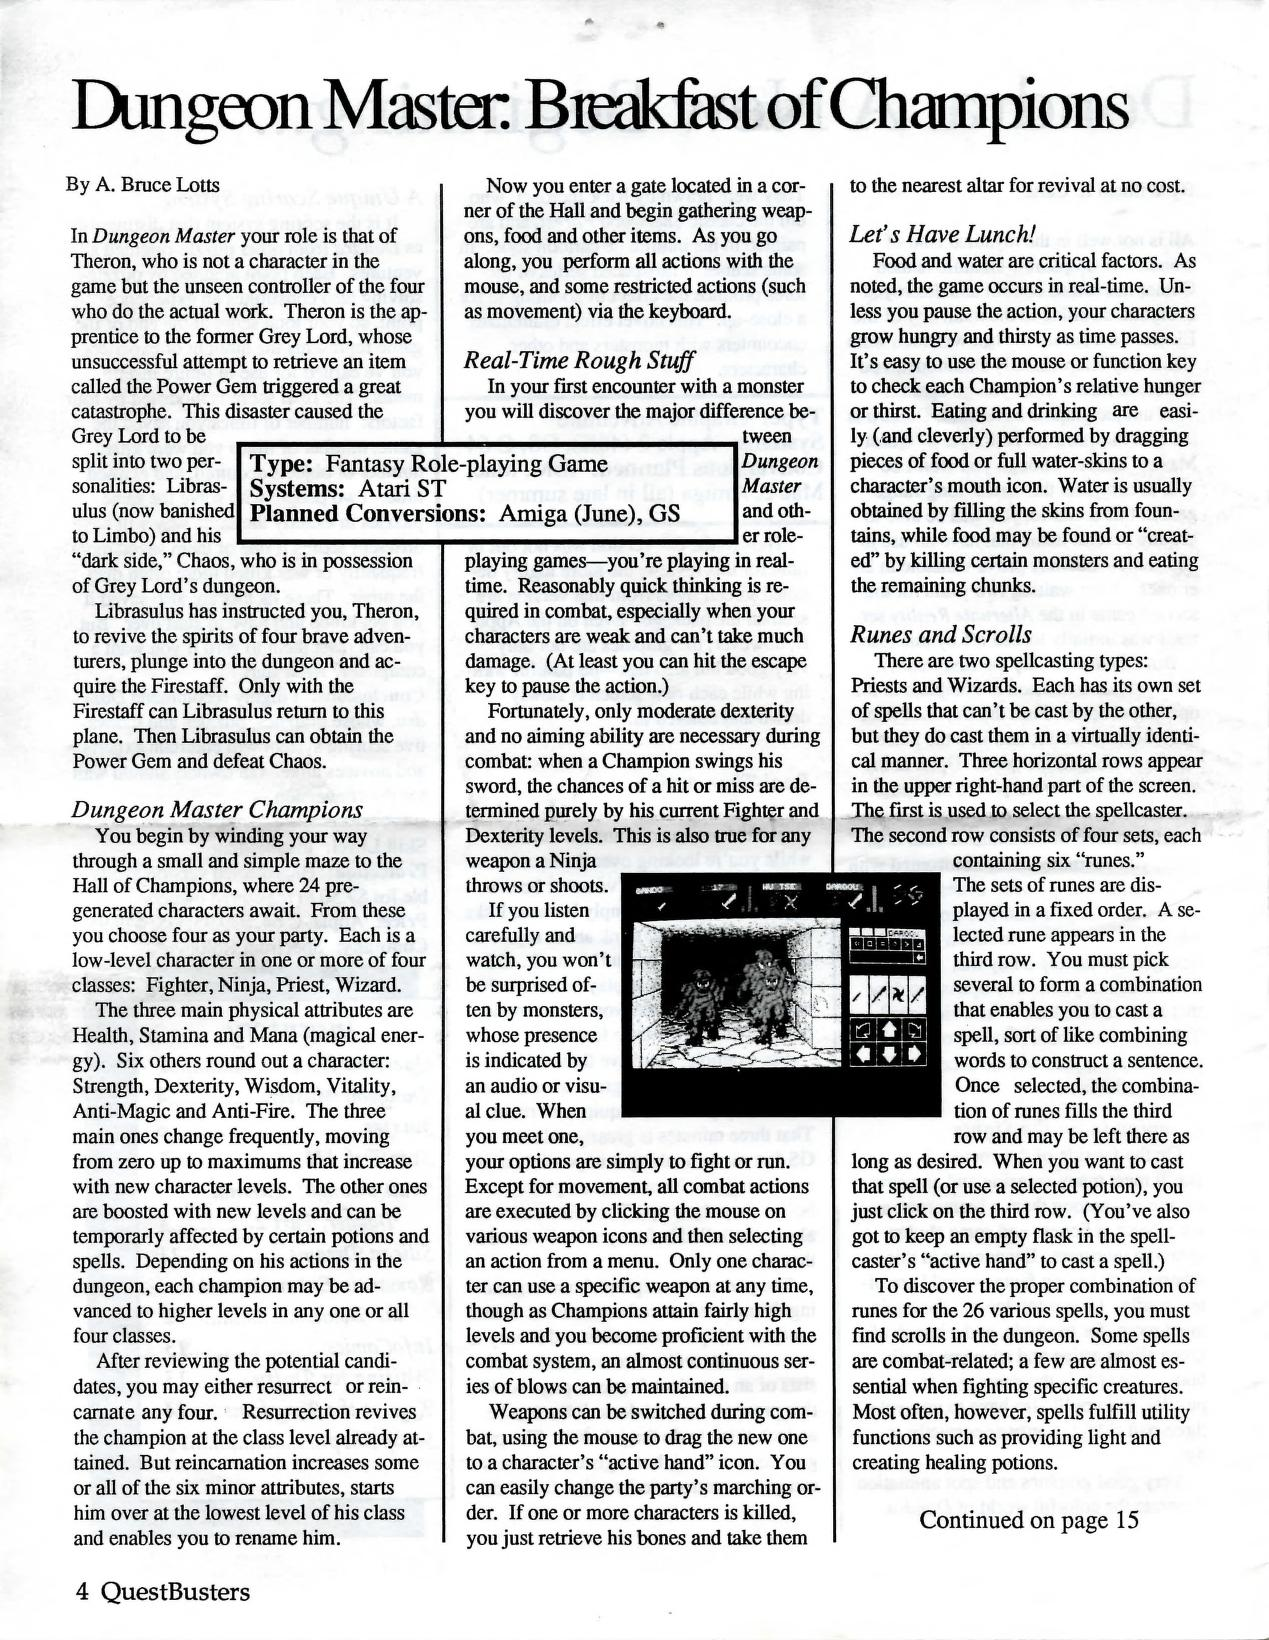 Dungeon Master for Atari ST Review published in American magazine 'QuestBusters', Vol 5 No 6 June 1988, Page 4